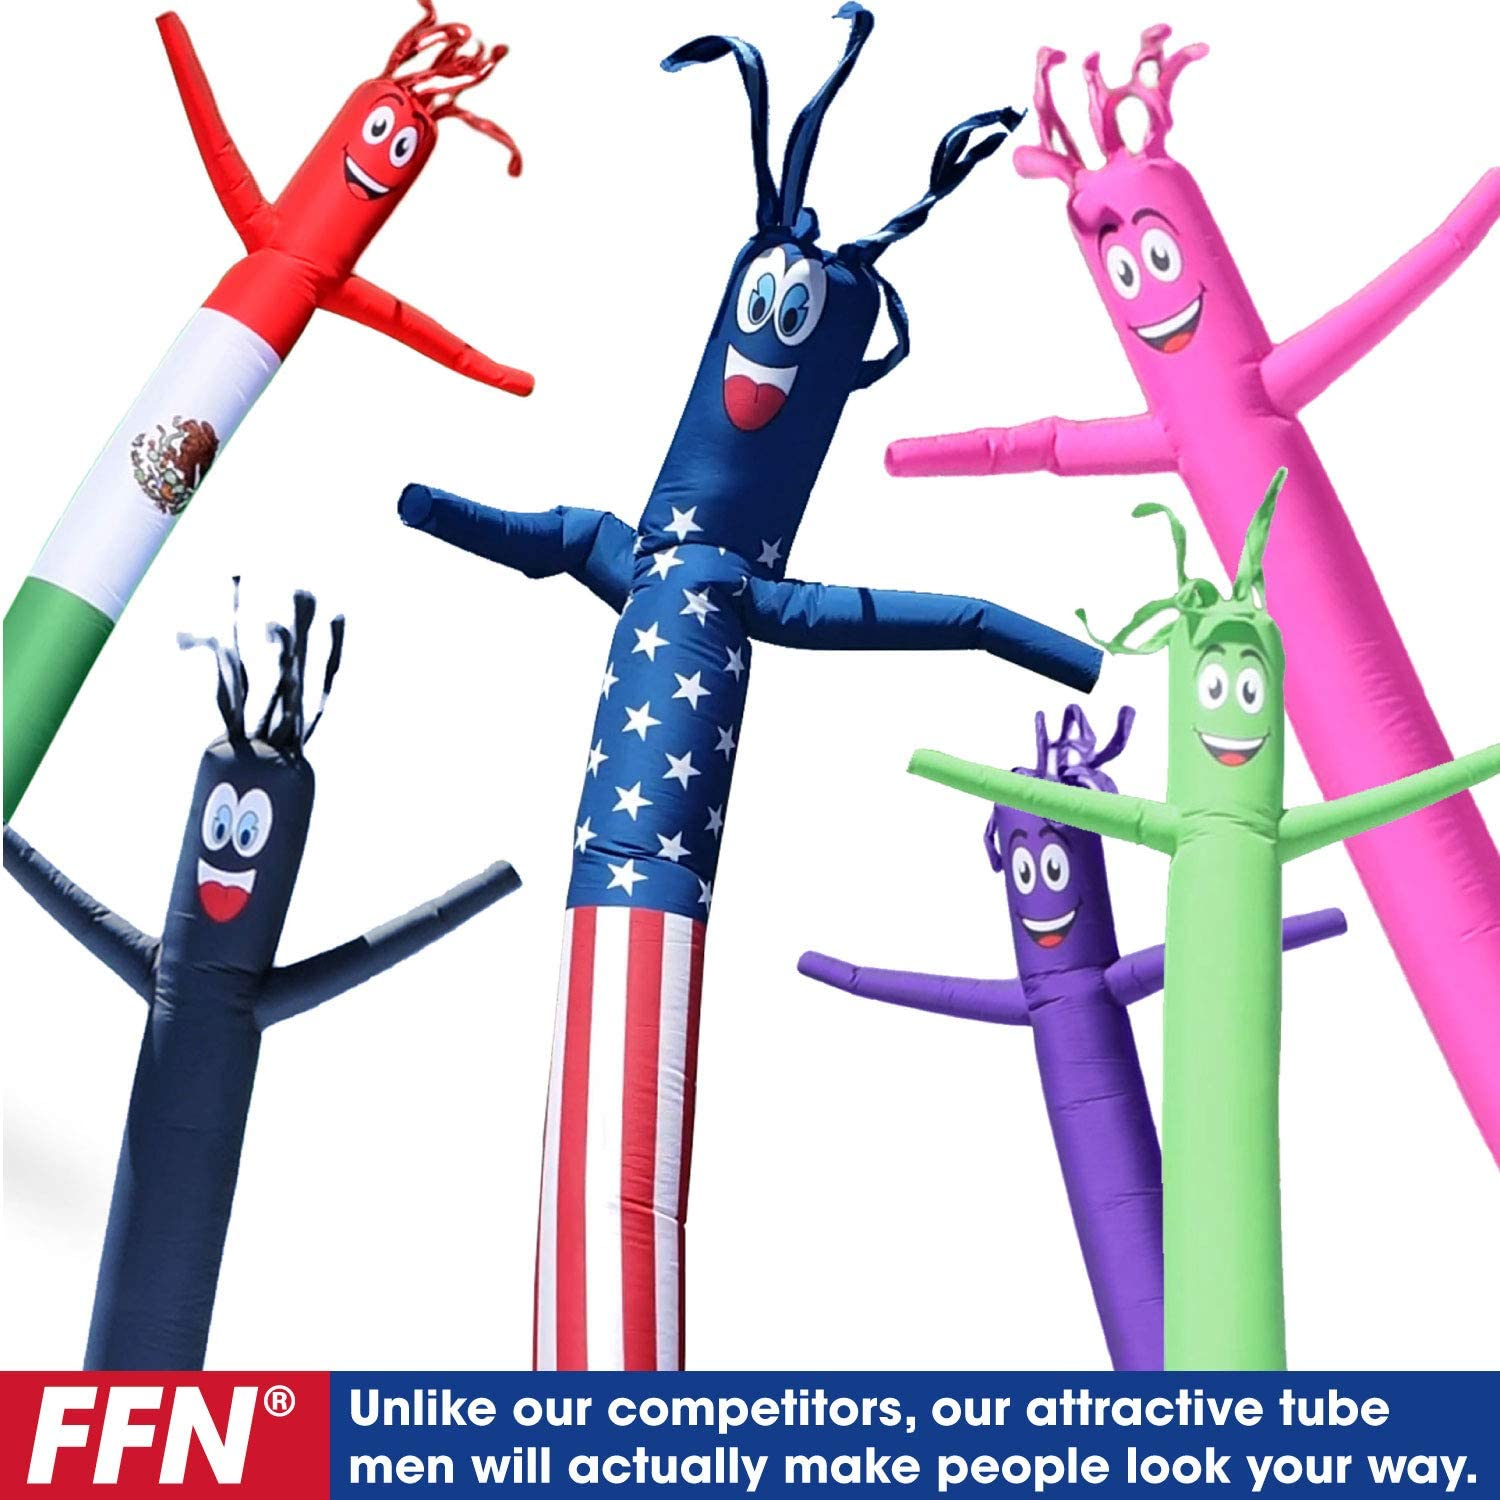 Light Green 8 Foot Tall Inflatable Tube Man Air Powered Waving Puppet Air Blower Motor Included with 6 Foot Solid Colored Dancer by Feather Flag Nation